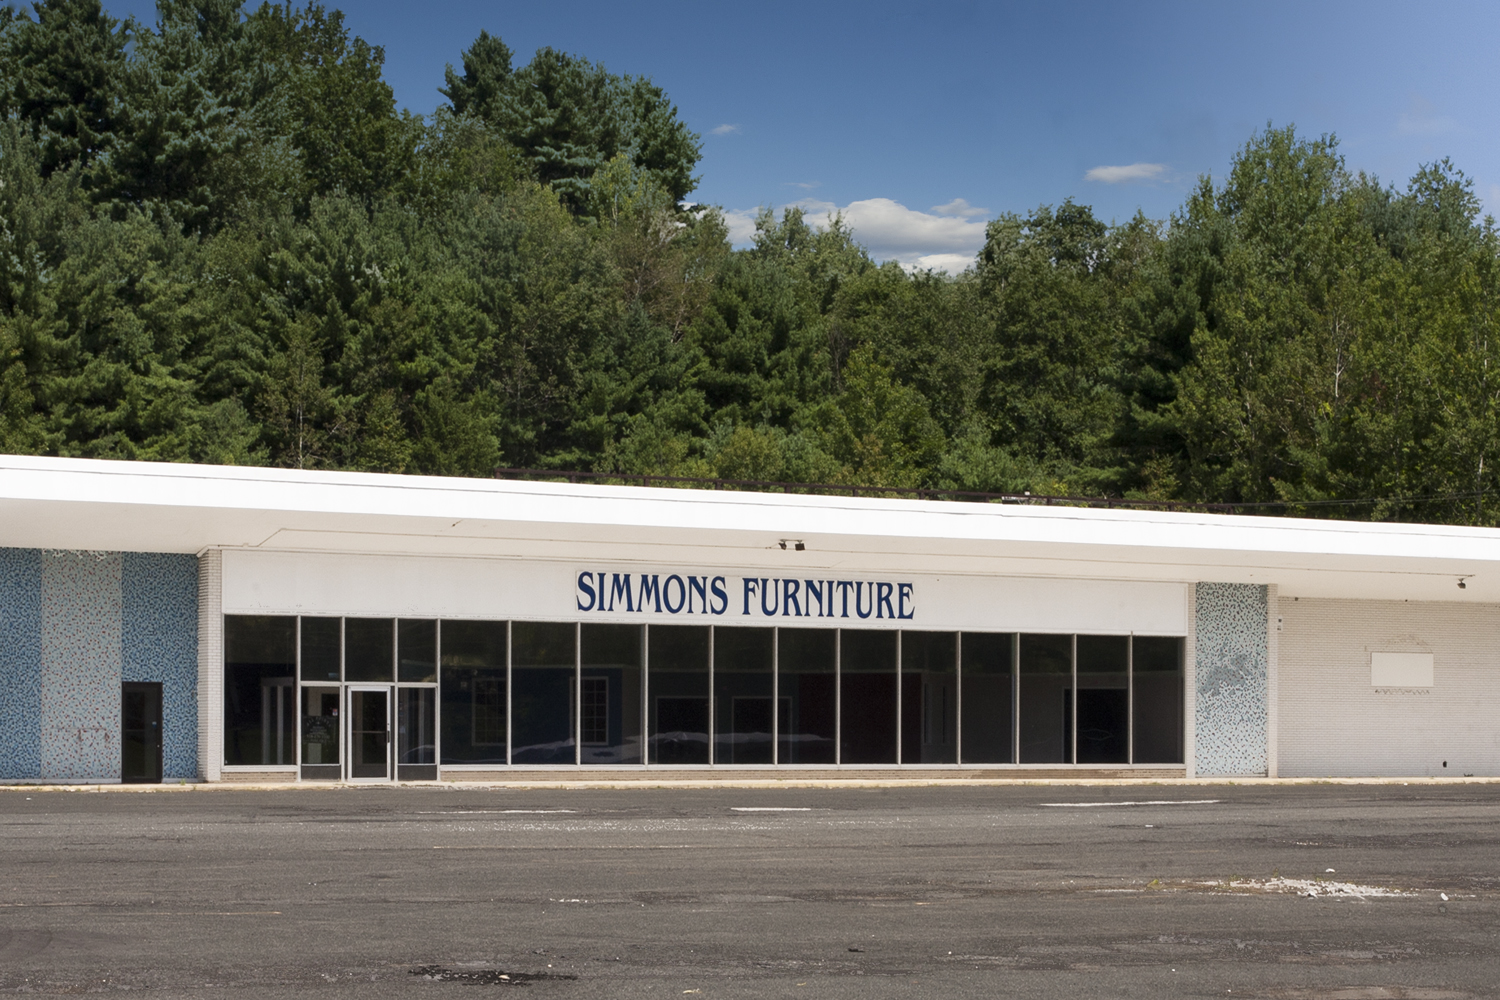 Simmons, Petersberg, NY ,2012, Archival pigment print, 24 x 34 inches